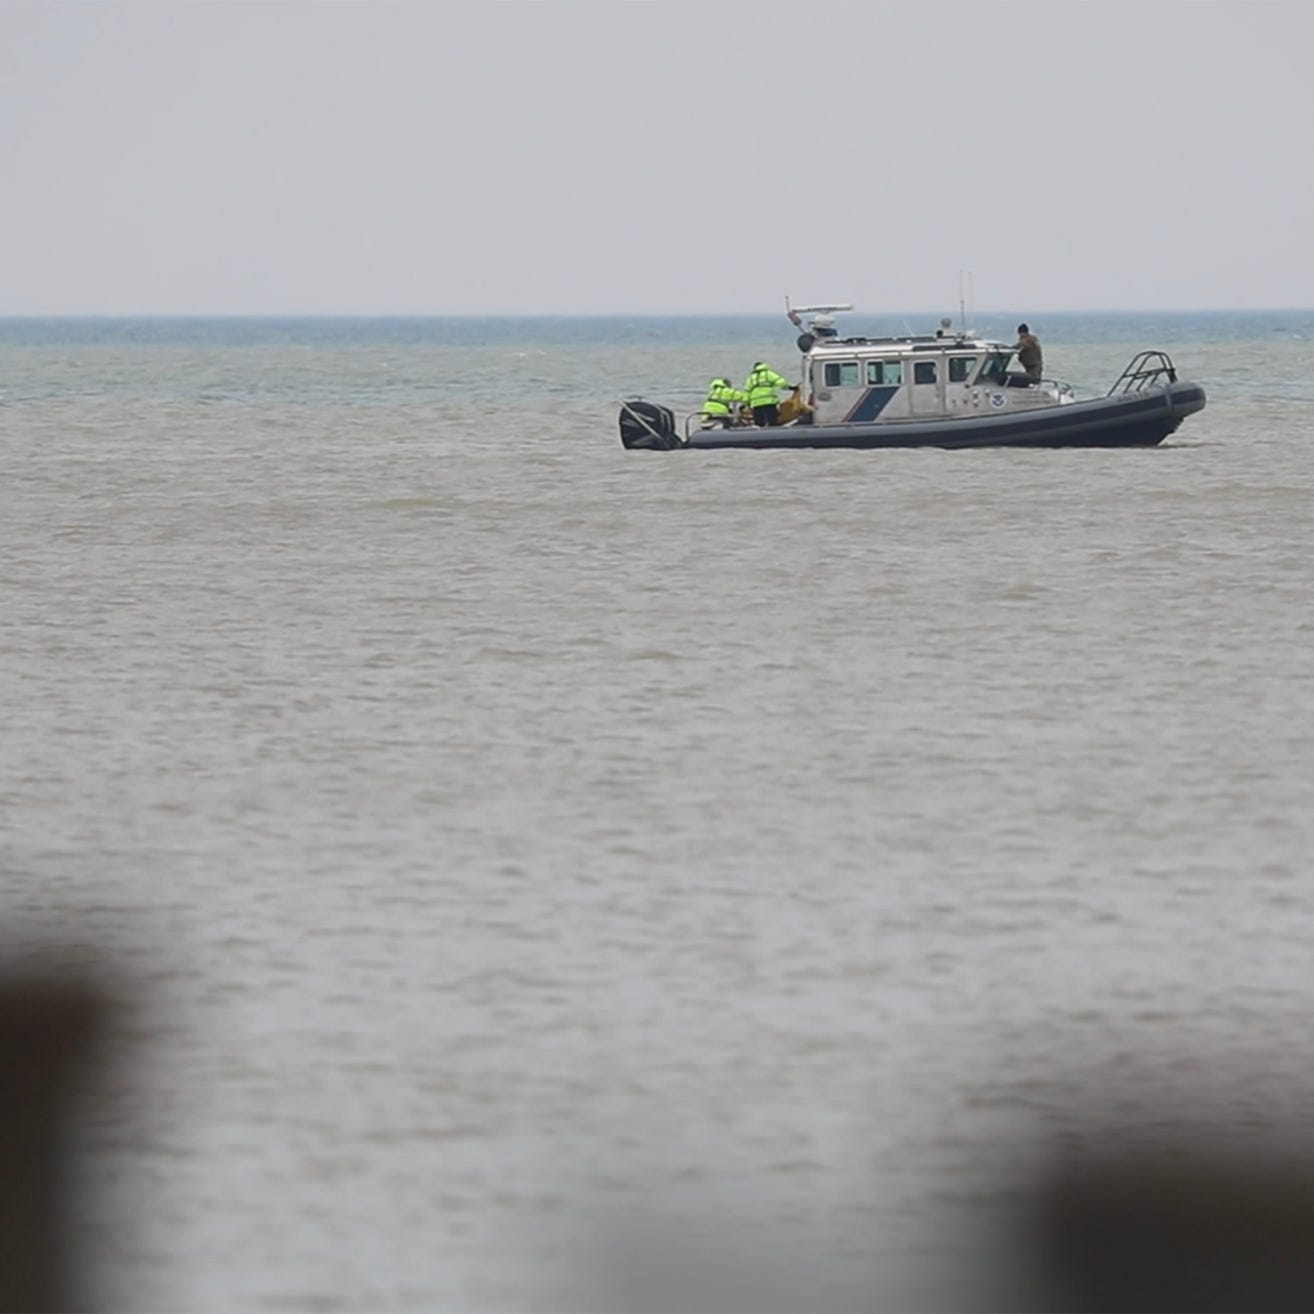 Man's body recovered from Lake Ontario in Charlotte; investigation underway